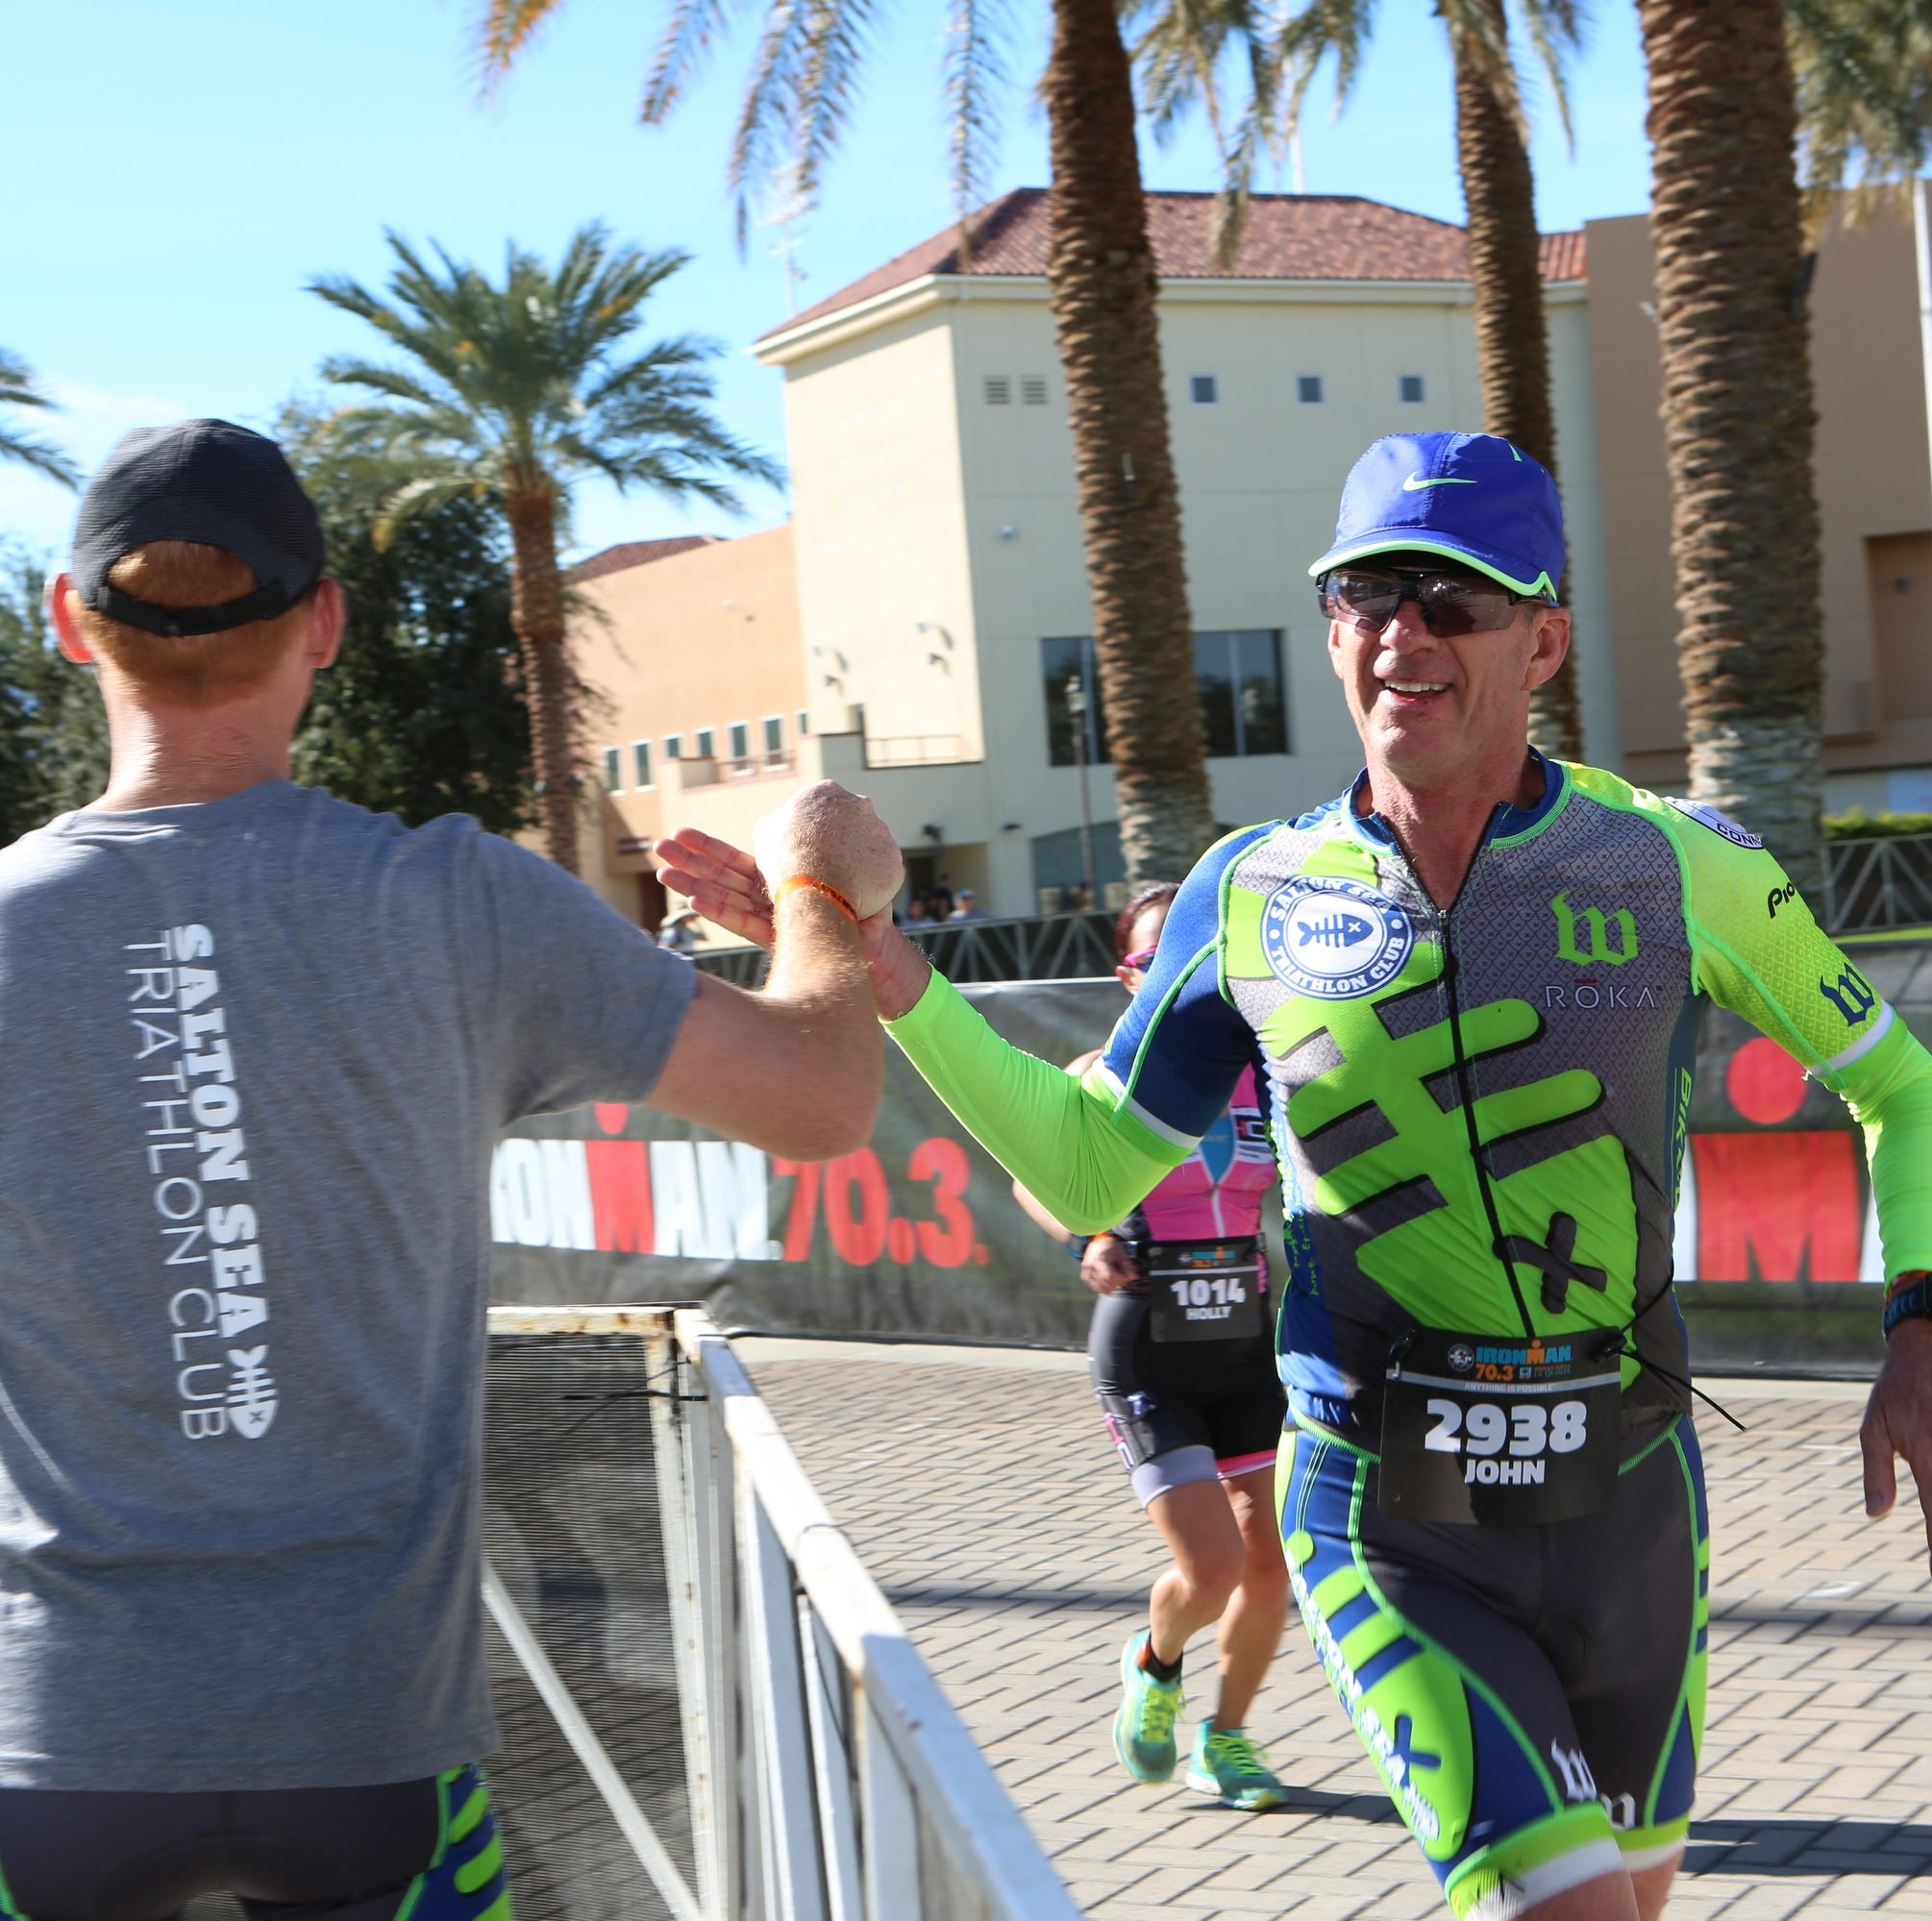 Inaugural Ironman event crowns winners as La Quinta, Indio residents get stuck in traffic